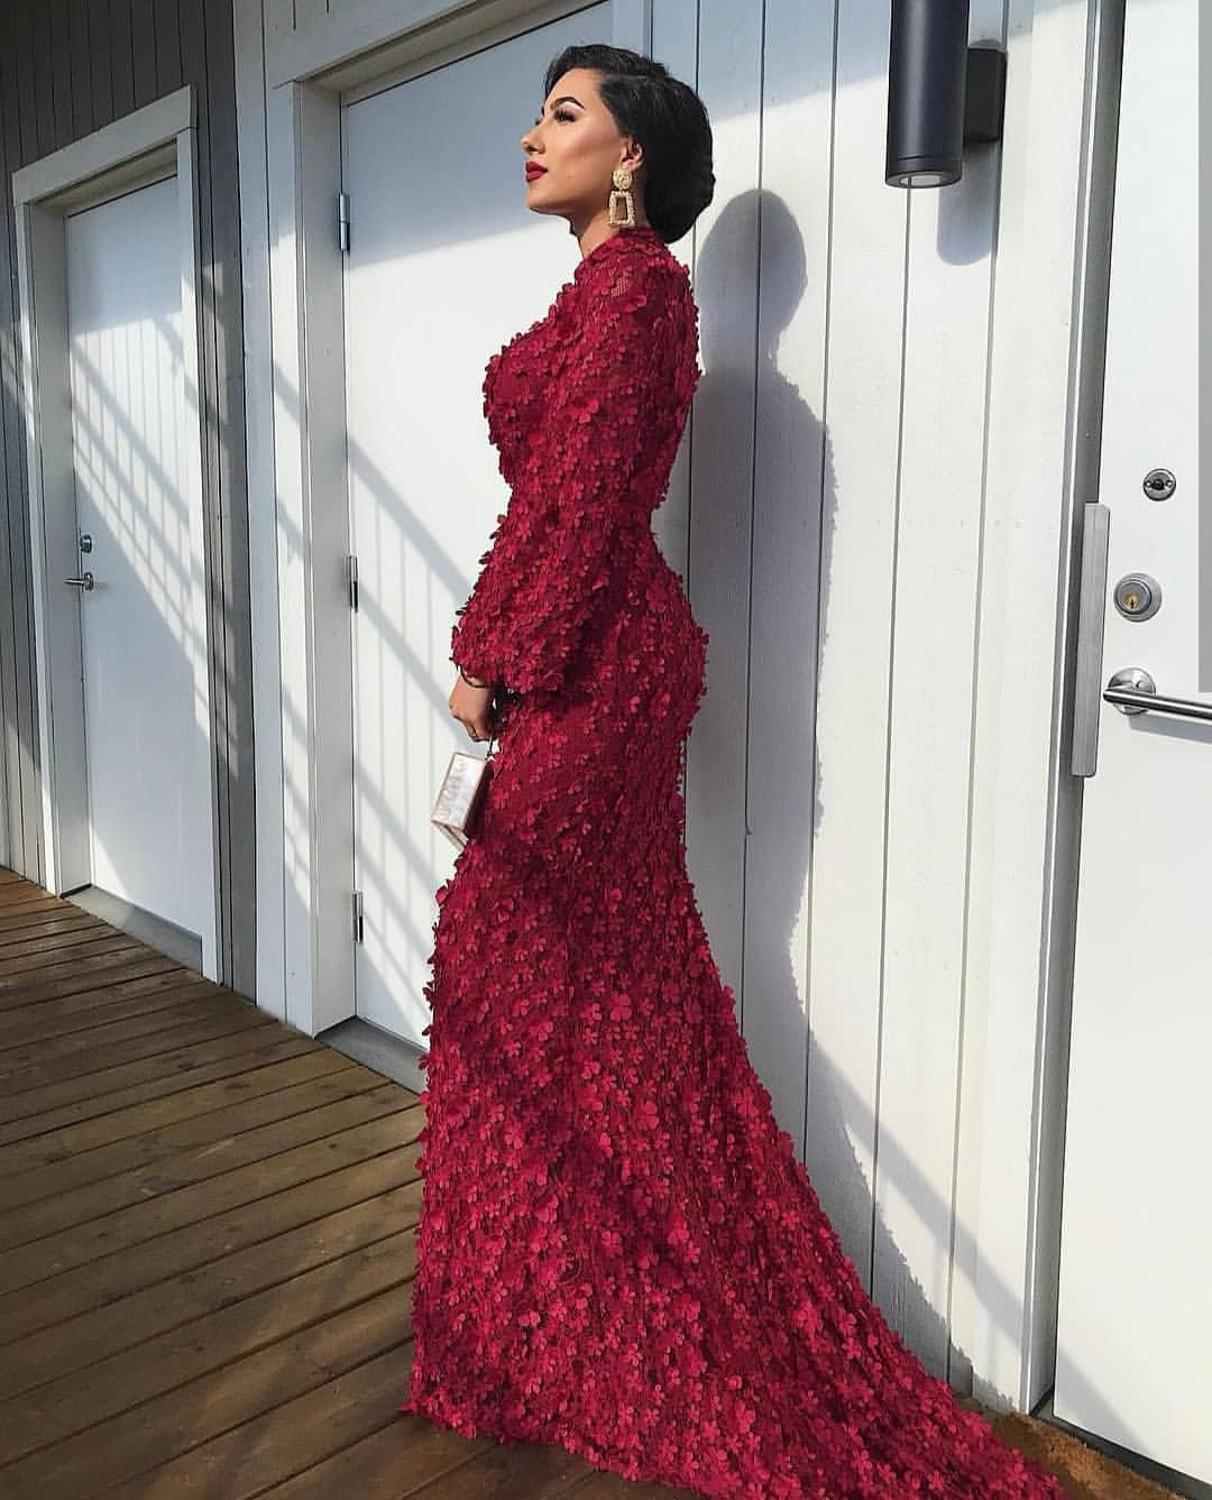 Fashion Muslim Burgundy Pink Mermaid Evening Dresses 2019 High Neck Women Flowers Pearls Lace Long Sleeve Evening Party Gowns